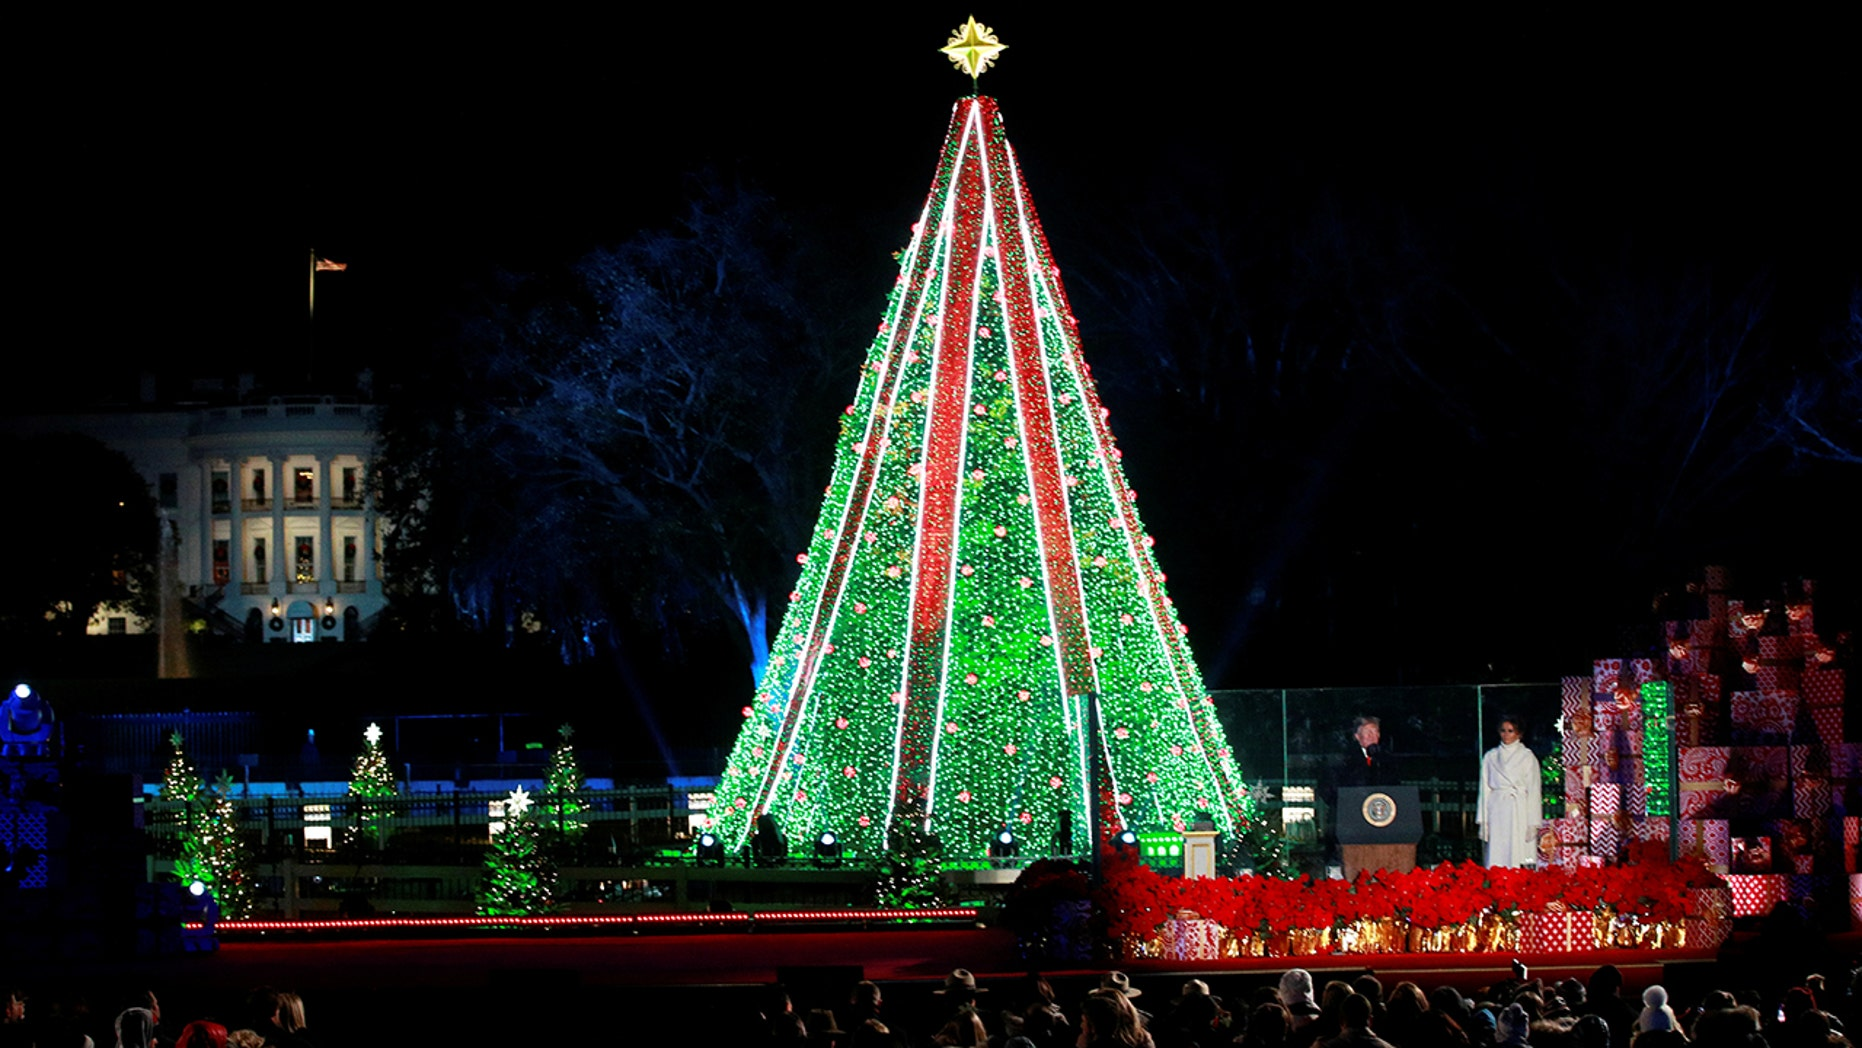 'Emotionally Distressed' Man Climbs National Christmas Tree And Refuses To Come Down